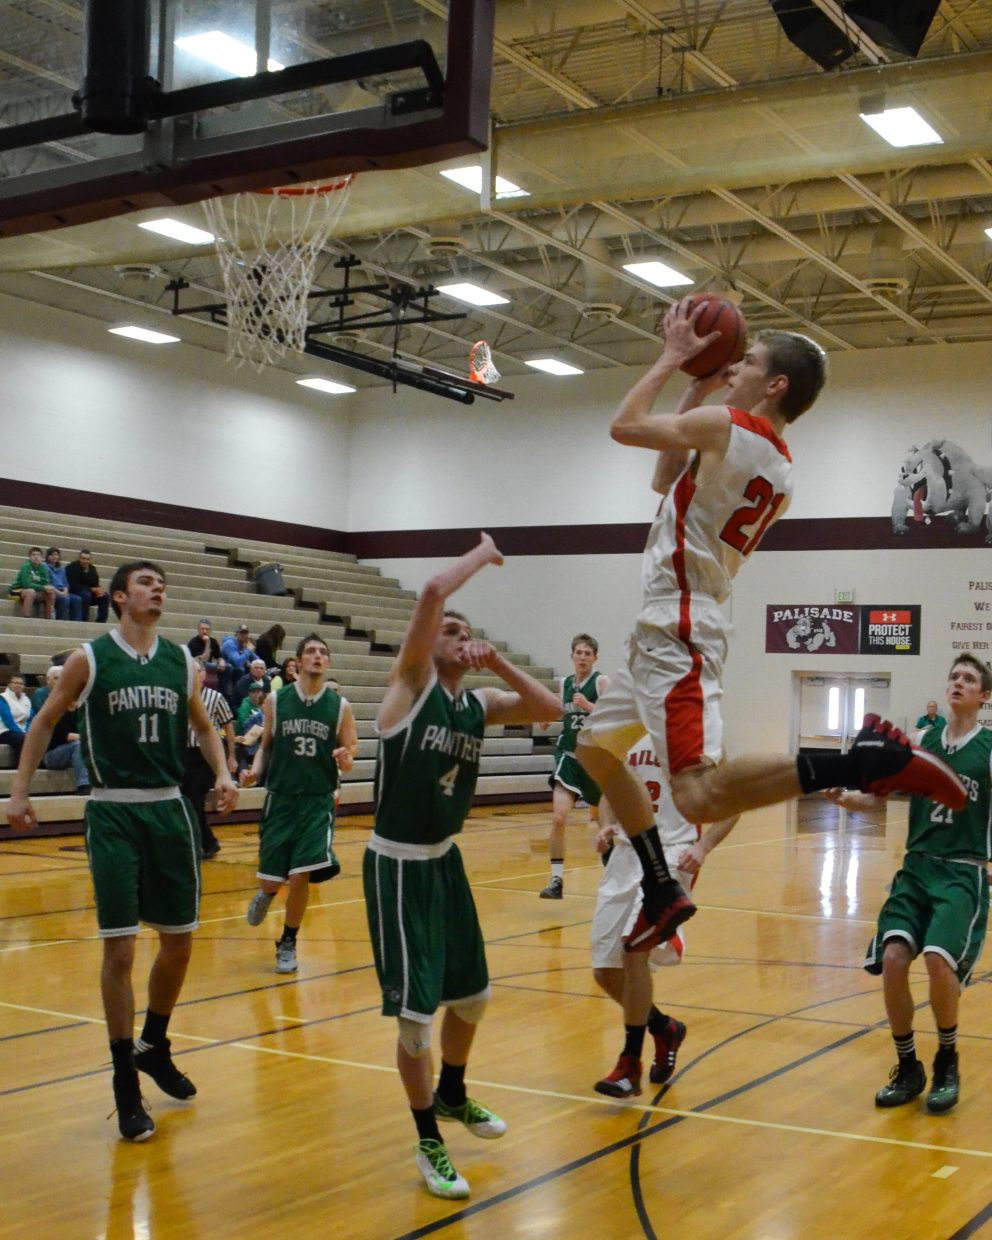 Matthew Lanning flies high for two during Steamboat Springs' game against Delta in the Western Slope tournament. Steamboat won, 45-27.